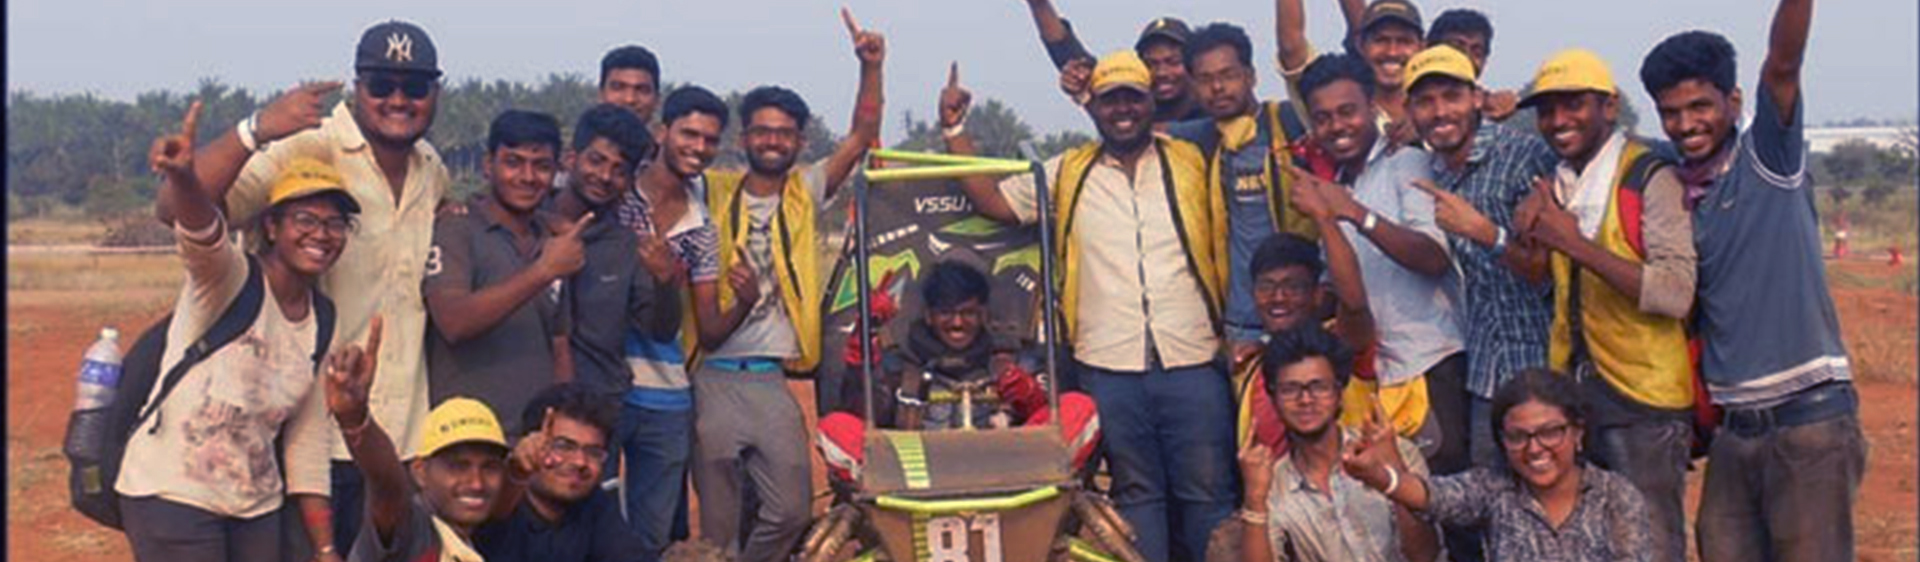 All India Rank - 1st in  ENDURANCE Race in ESI-2018, Coimbatore Held on 7th January, 2018